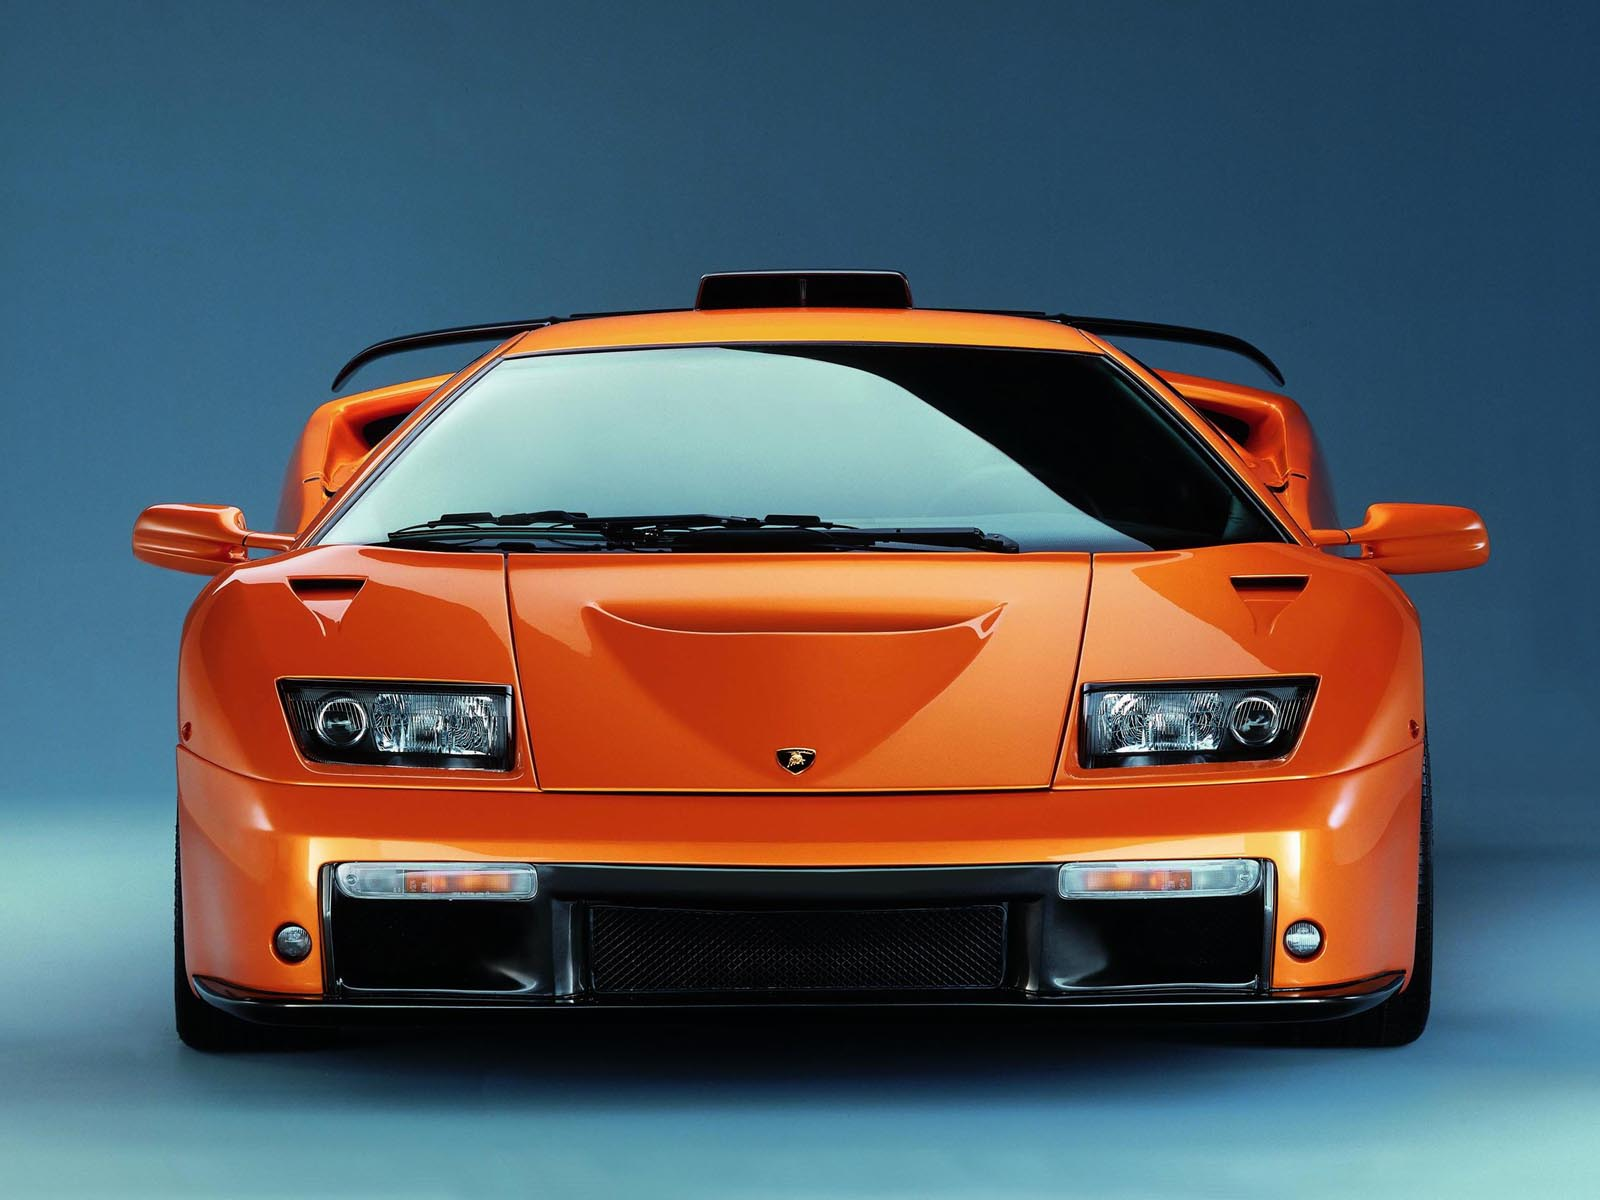 HQ Lamborghini Diablo Wallpapers | File 133.84Kb